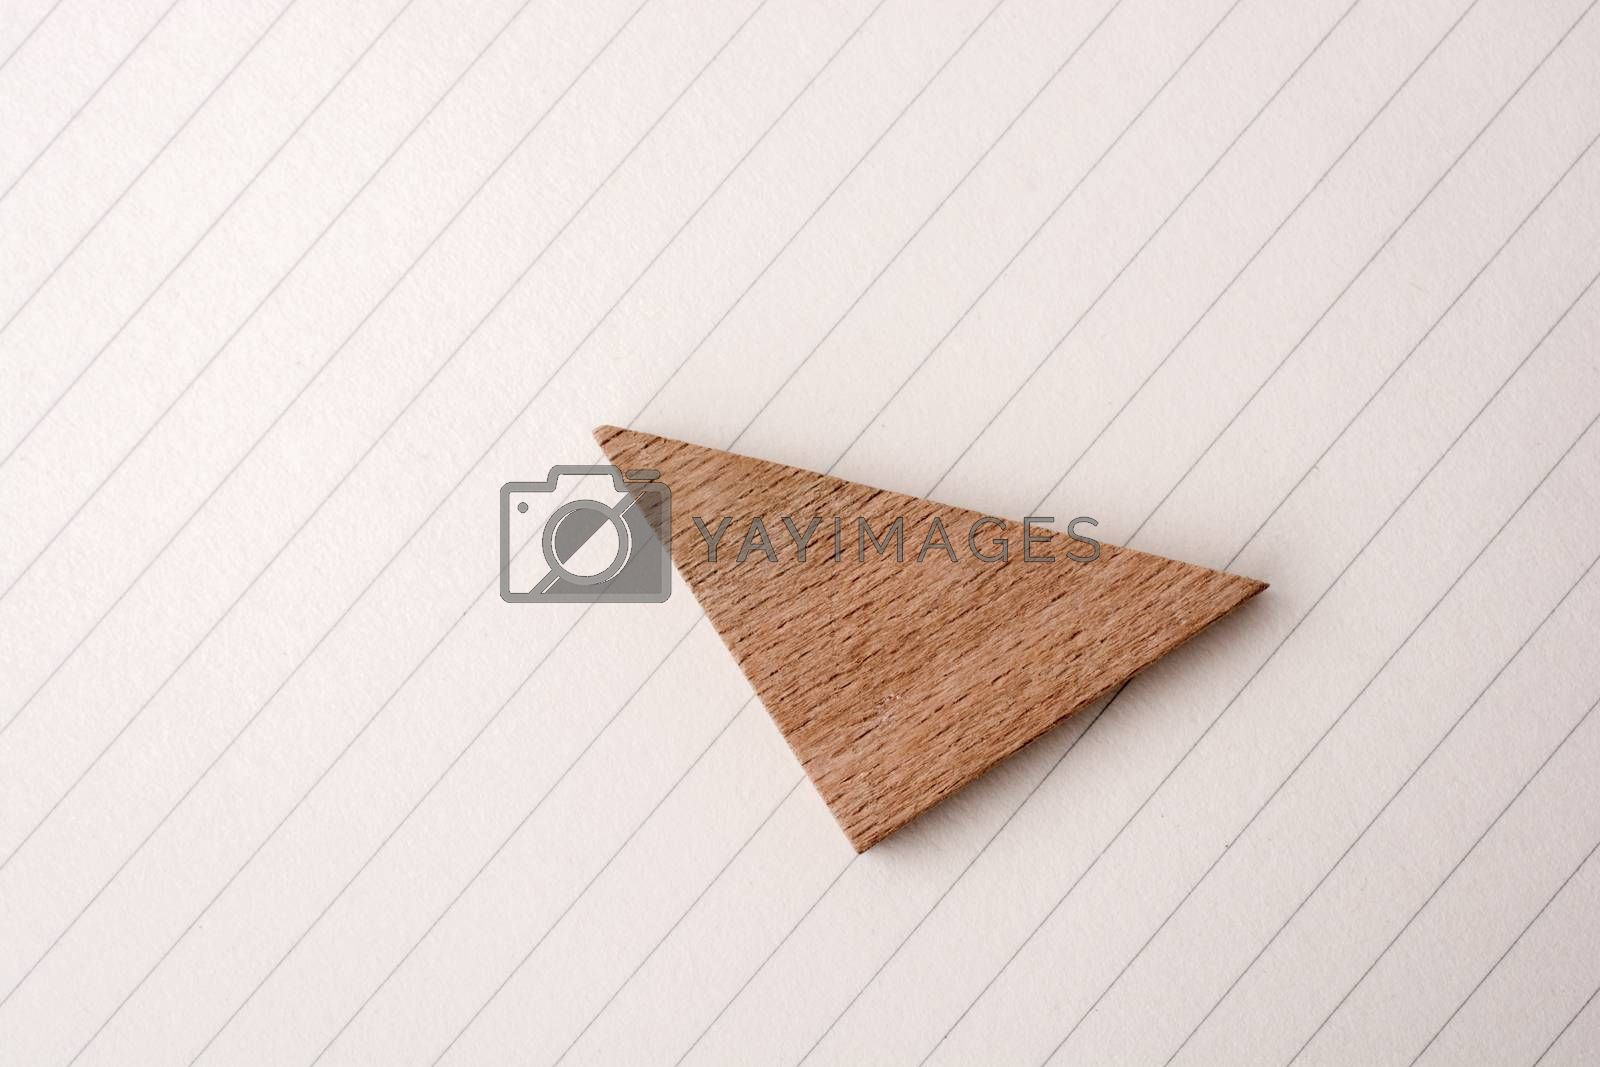 Piece of wood in the shpae of a triangle on paper